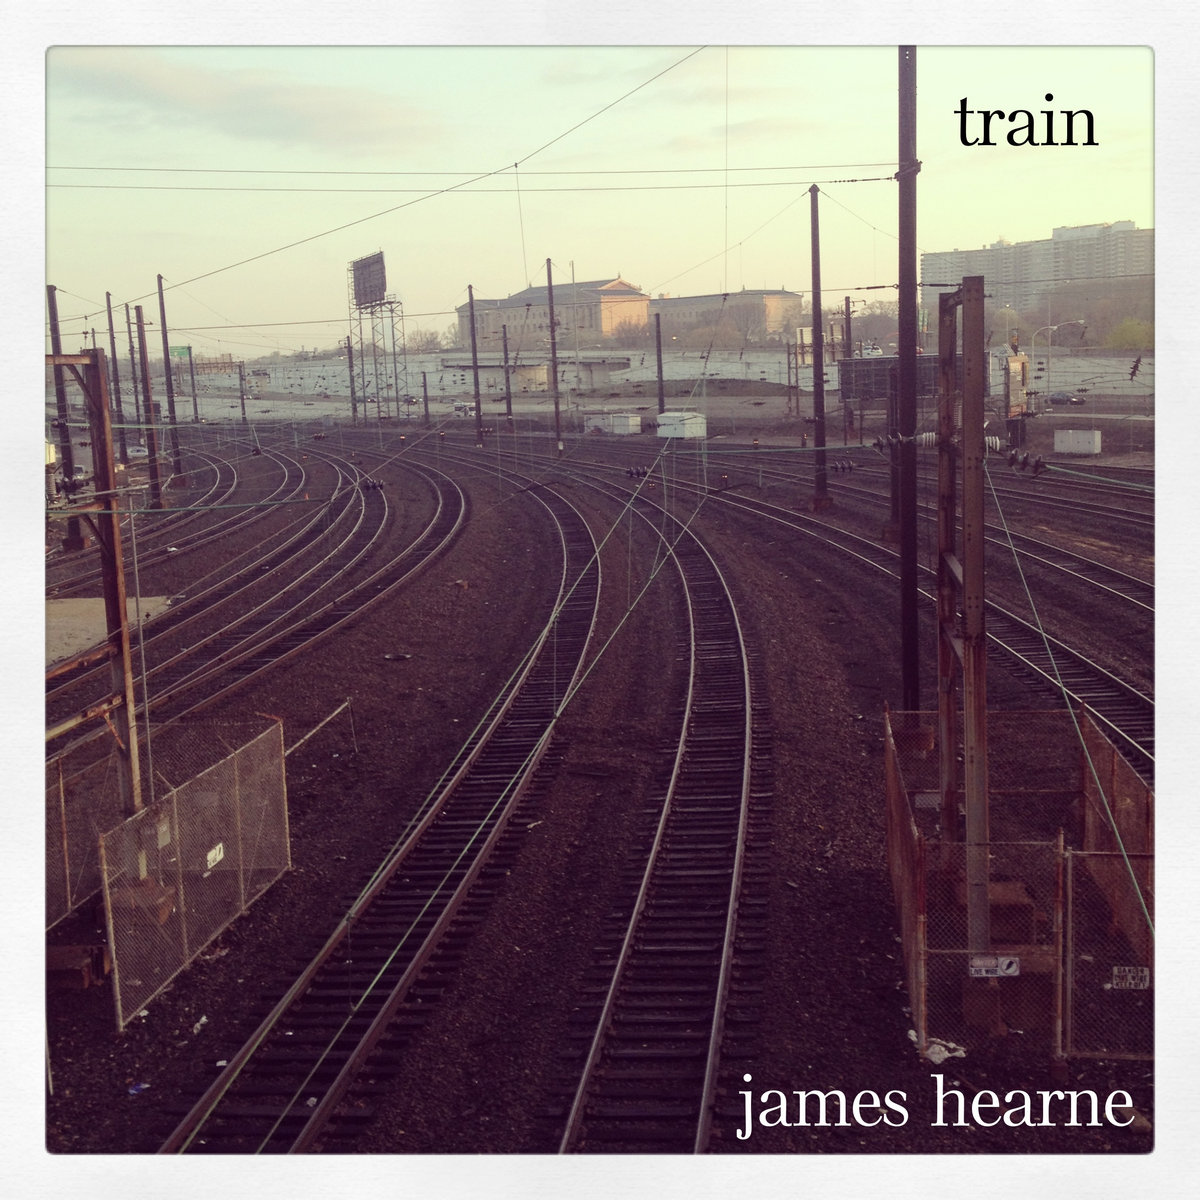 Train by James Hearne